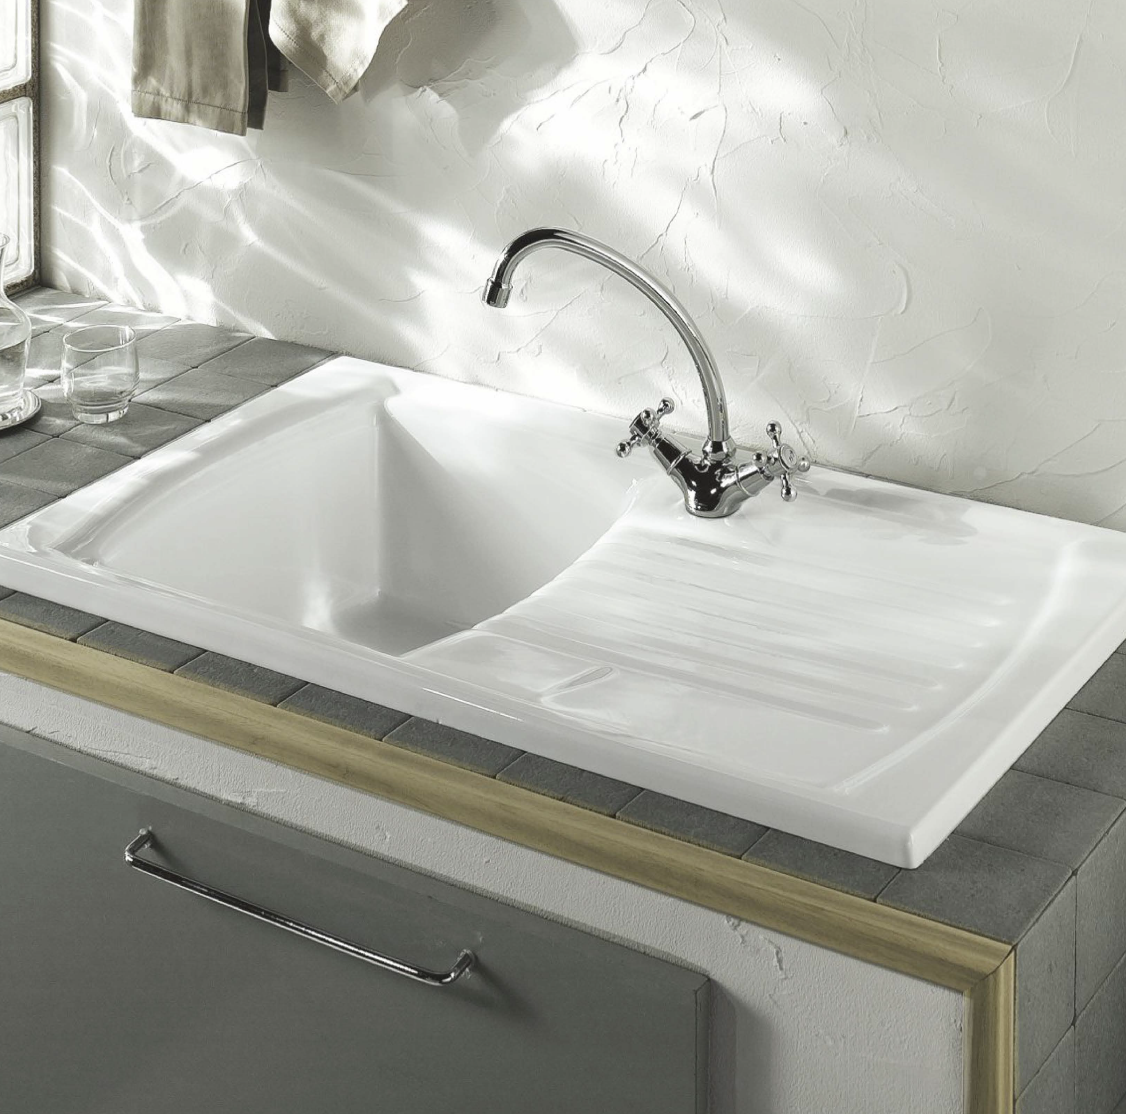 Lusitano Inset sink SBSD